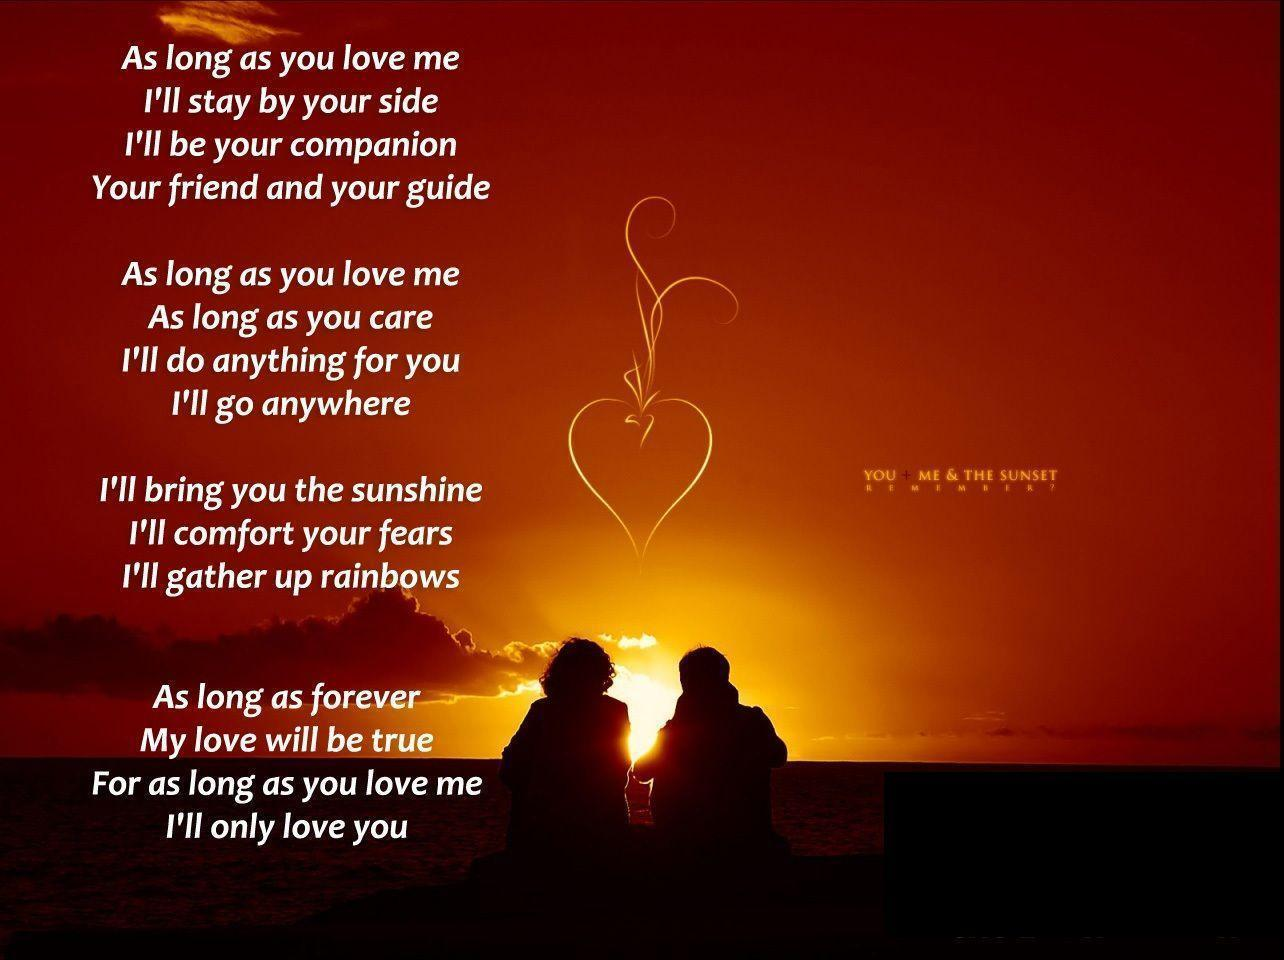 Love Your Wallpaper : Love Poems Wallpapers - Wallpaper cave